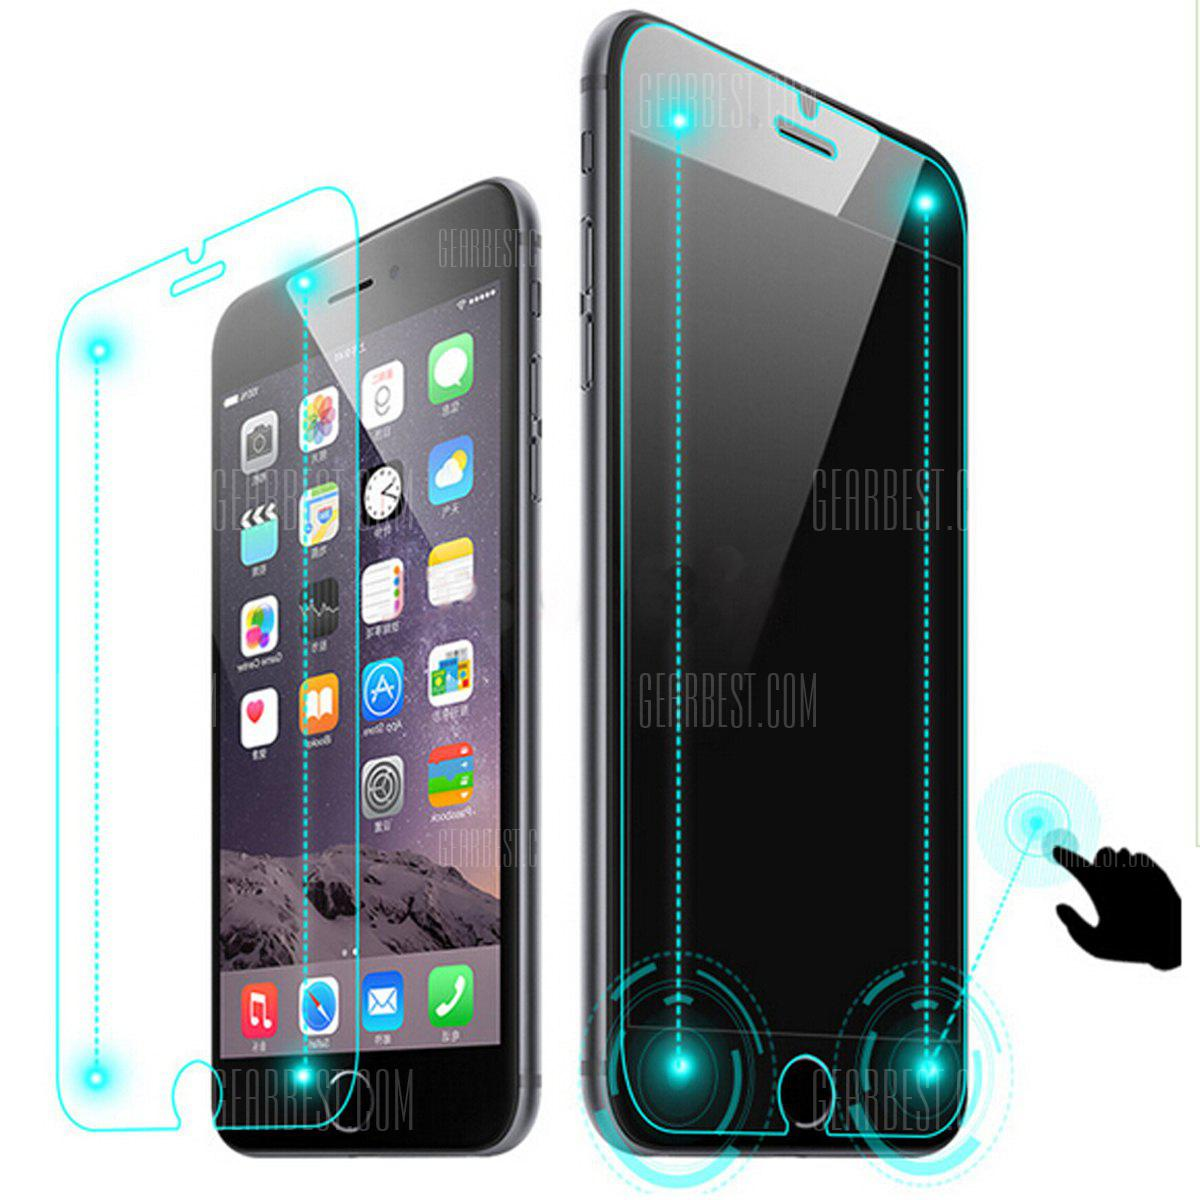 ASLING Intelligent Tempered Glass Screen Film for iPhone 6 Plus / 6S Plus